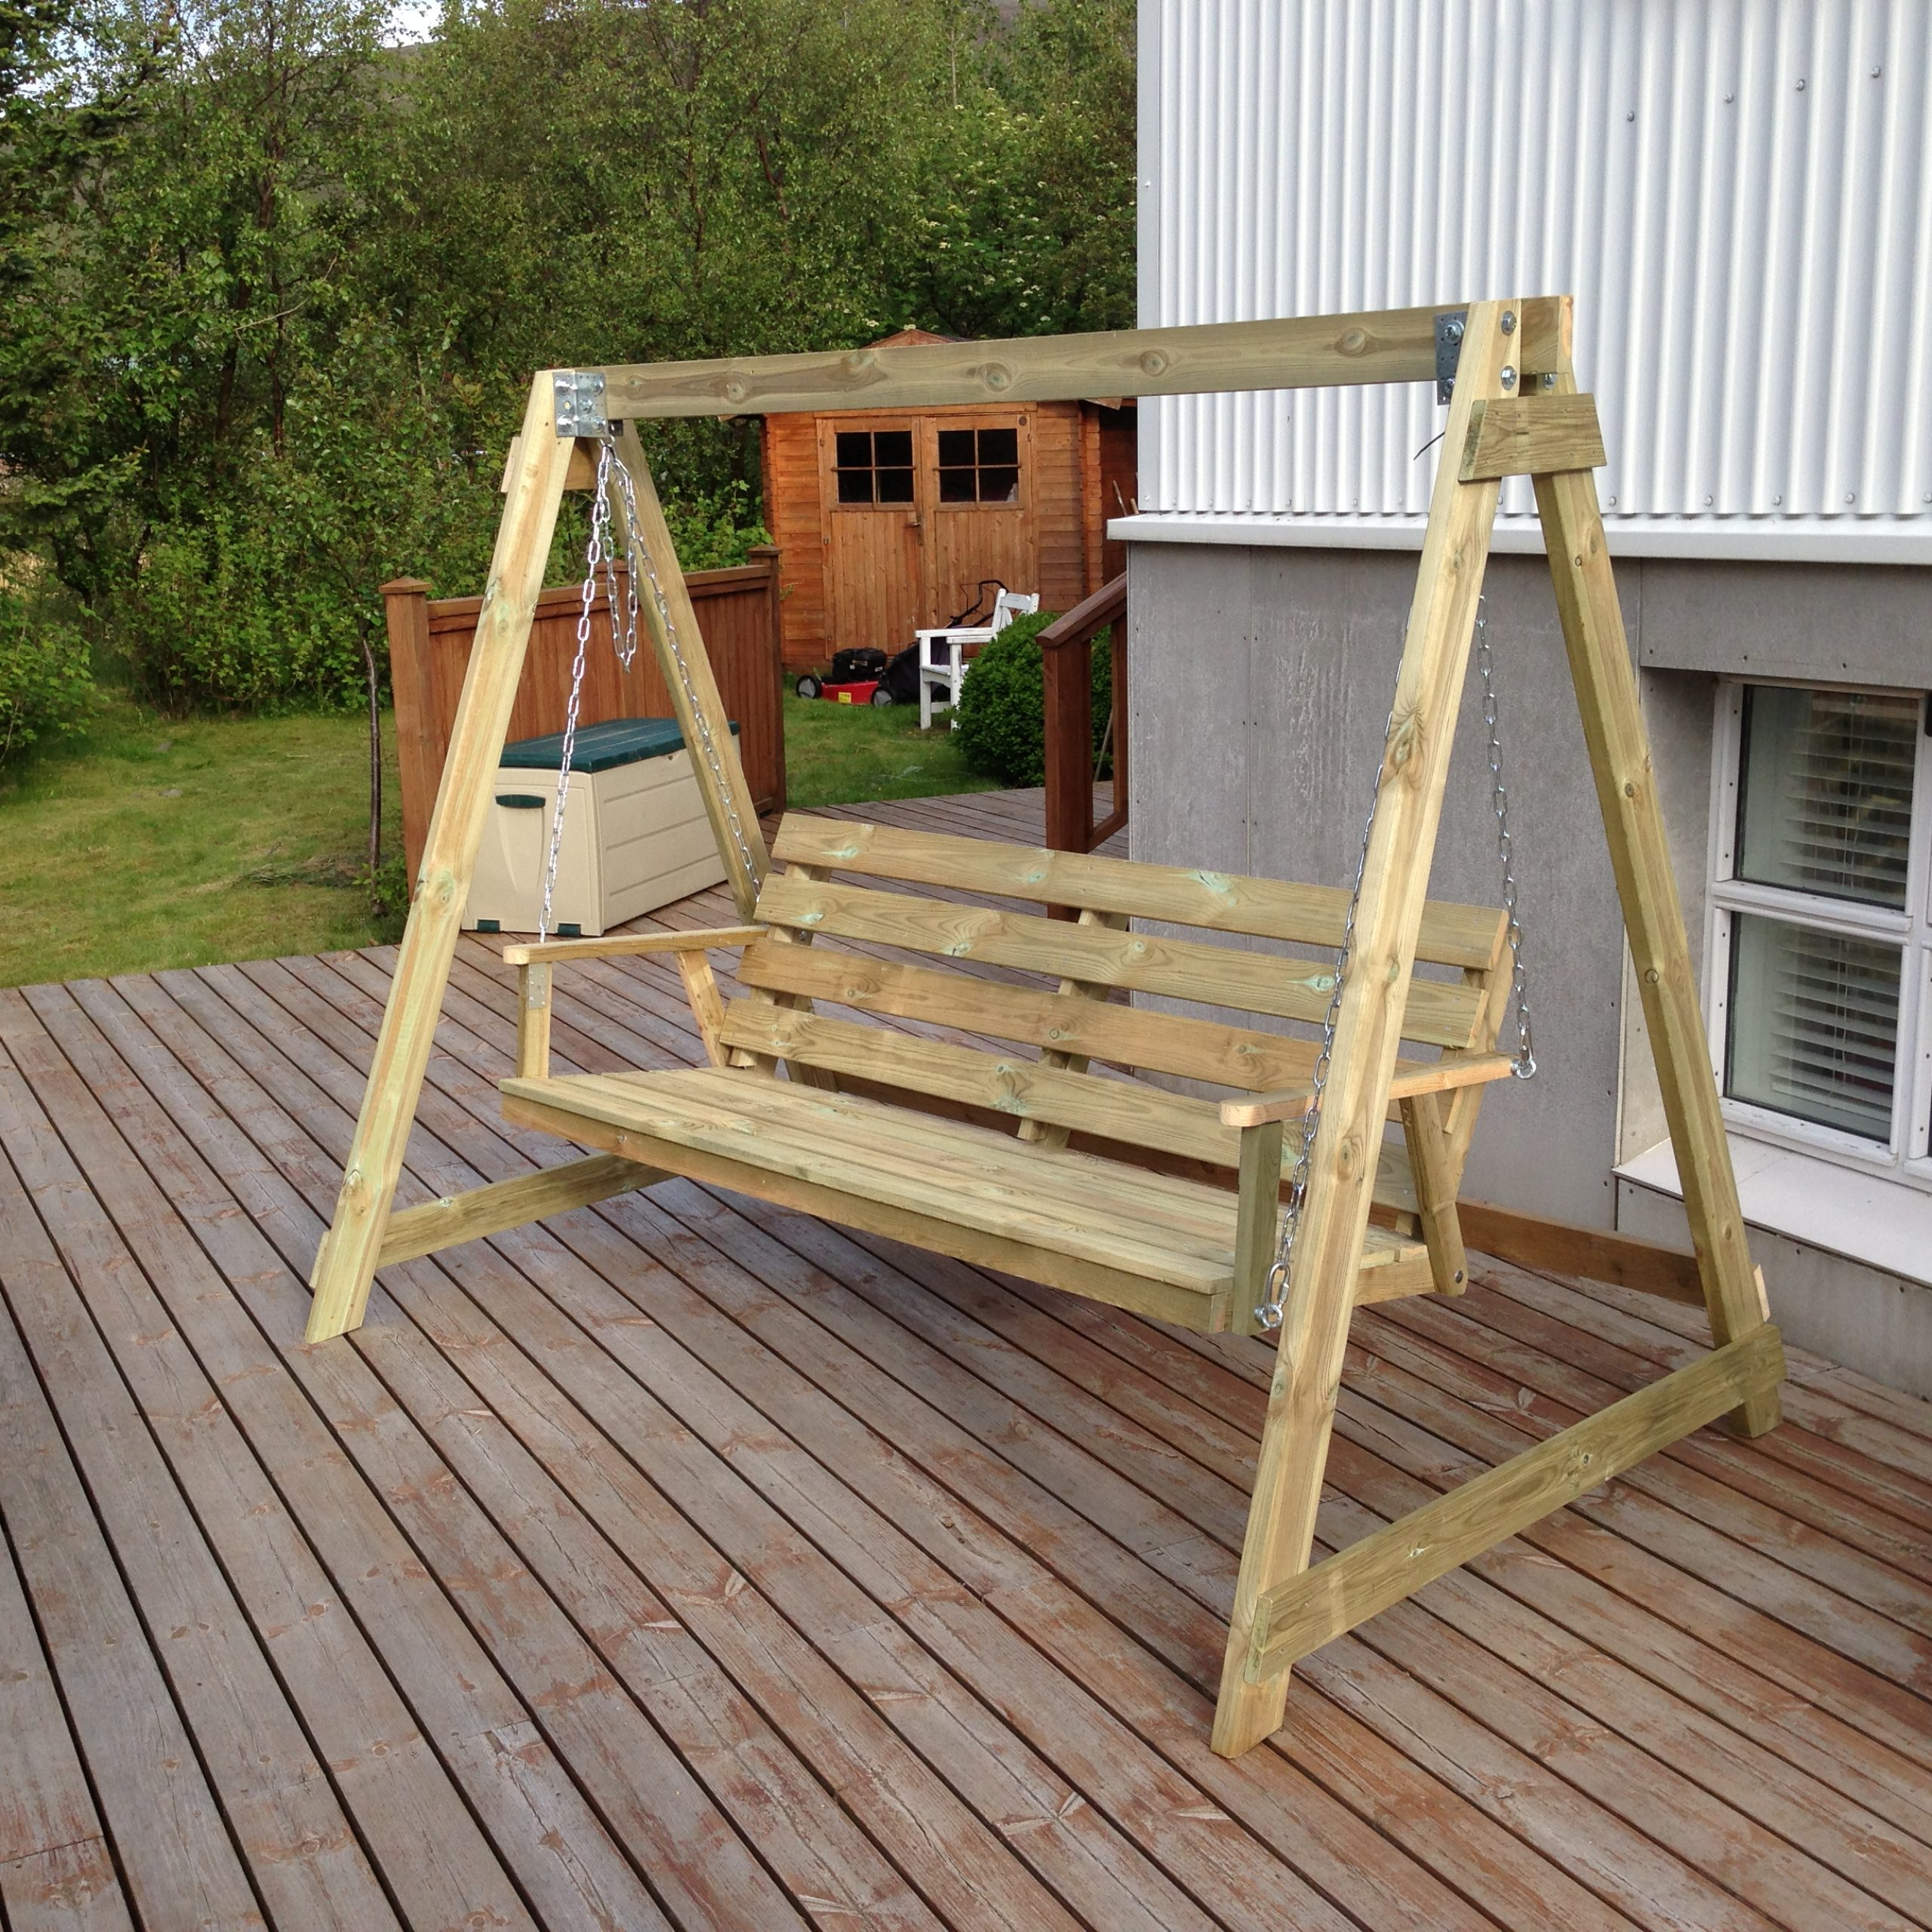 Well Known Bench Swing Plans Wooden Porch Swings Patio At Walmart With Within Patio Porch Swings With Stand (Gallery 16 of 30)